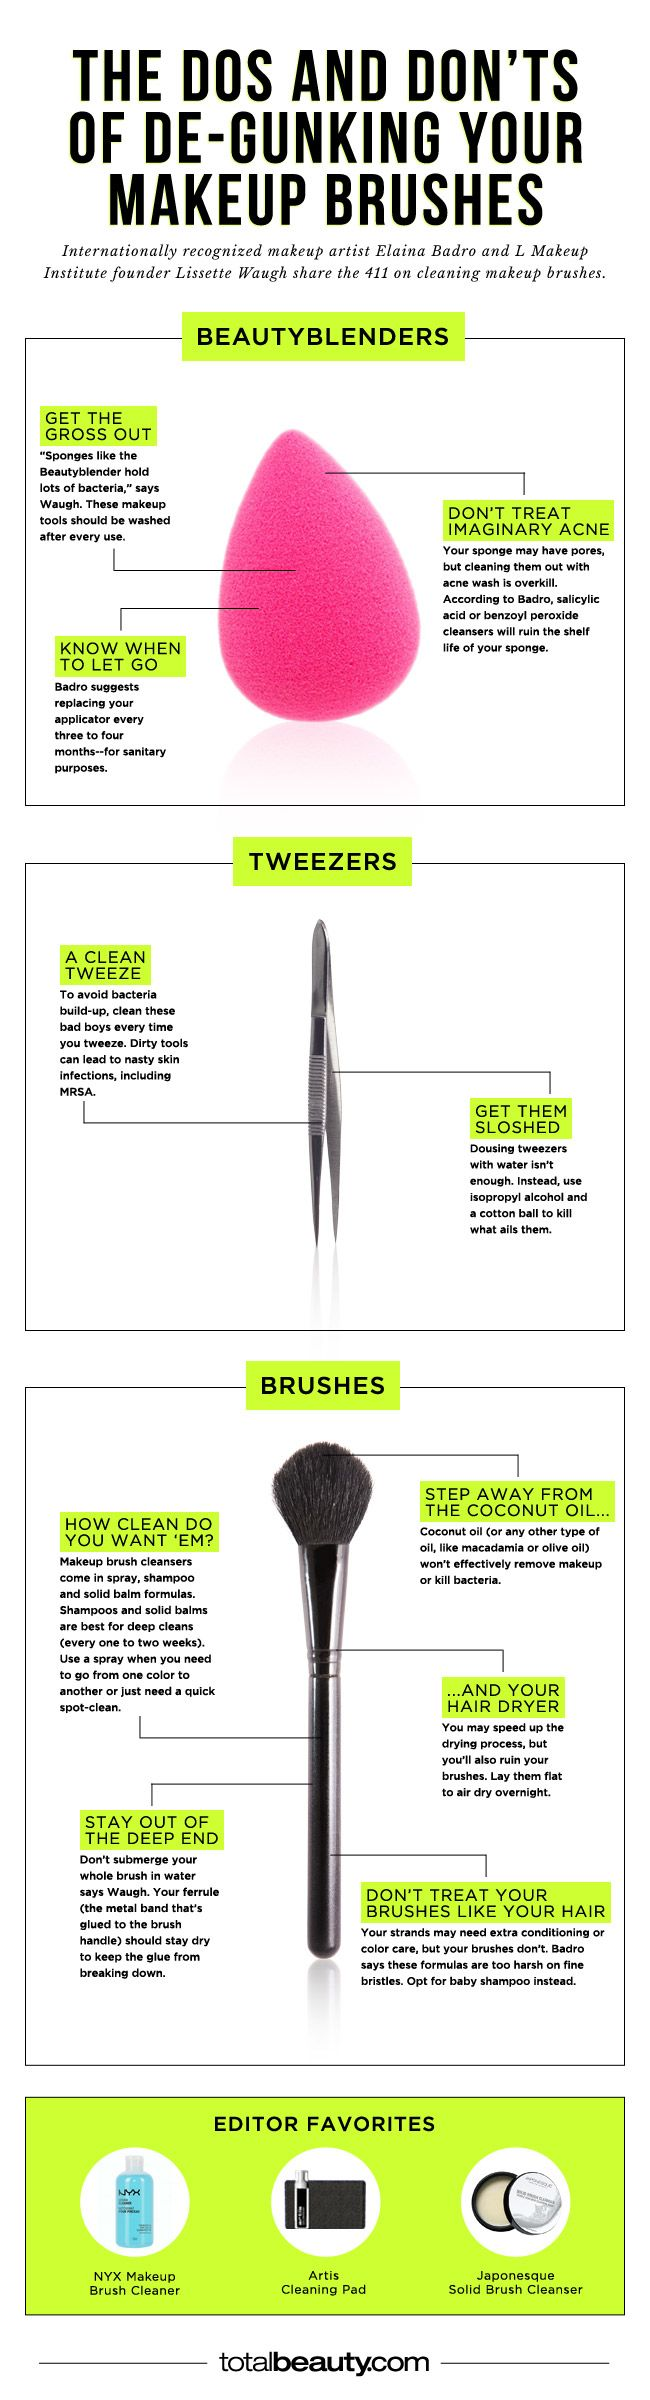 You're Making These Mistakes When Cleaning Your Makeup Brushes #beauty #tools #beautytools